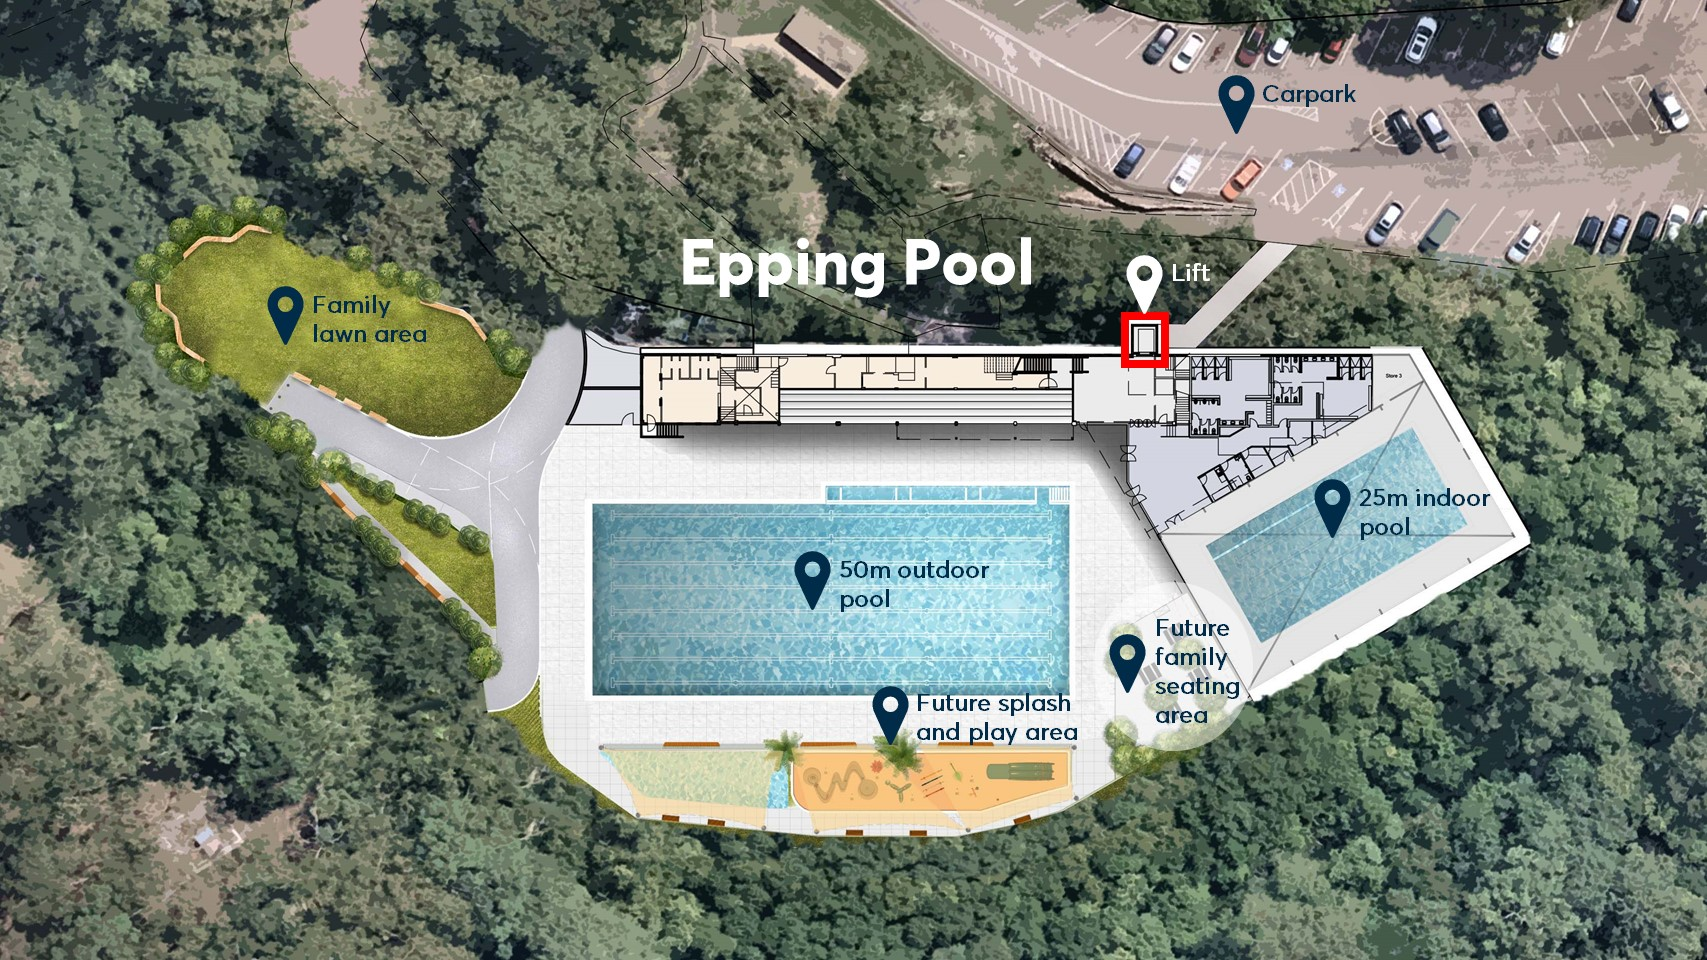 Epping_Pool_-_Aerial_Concept_Plan